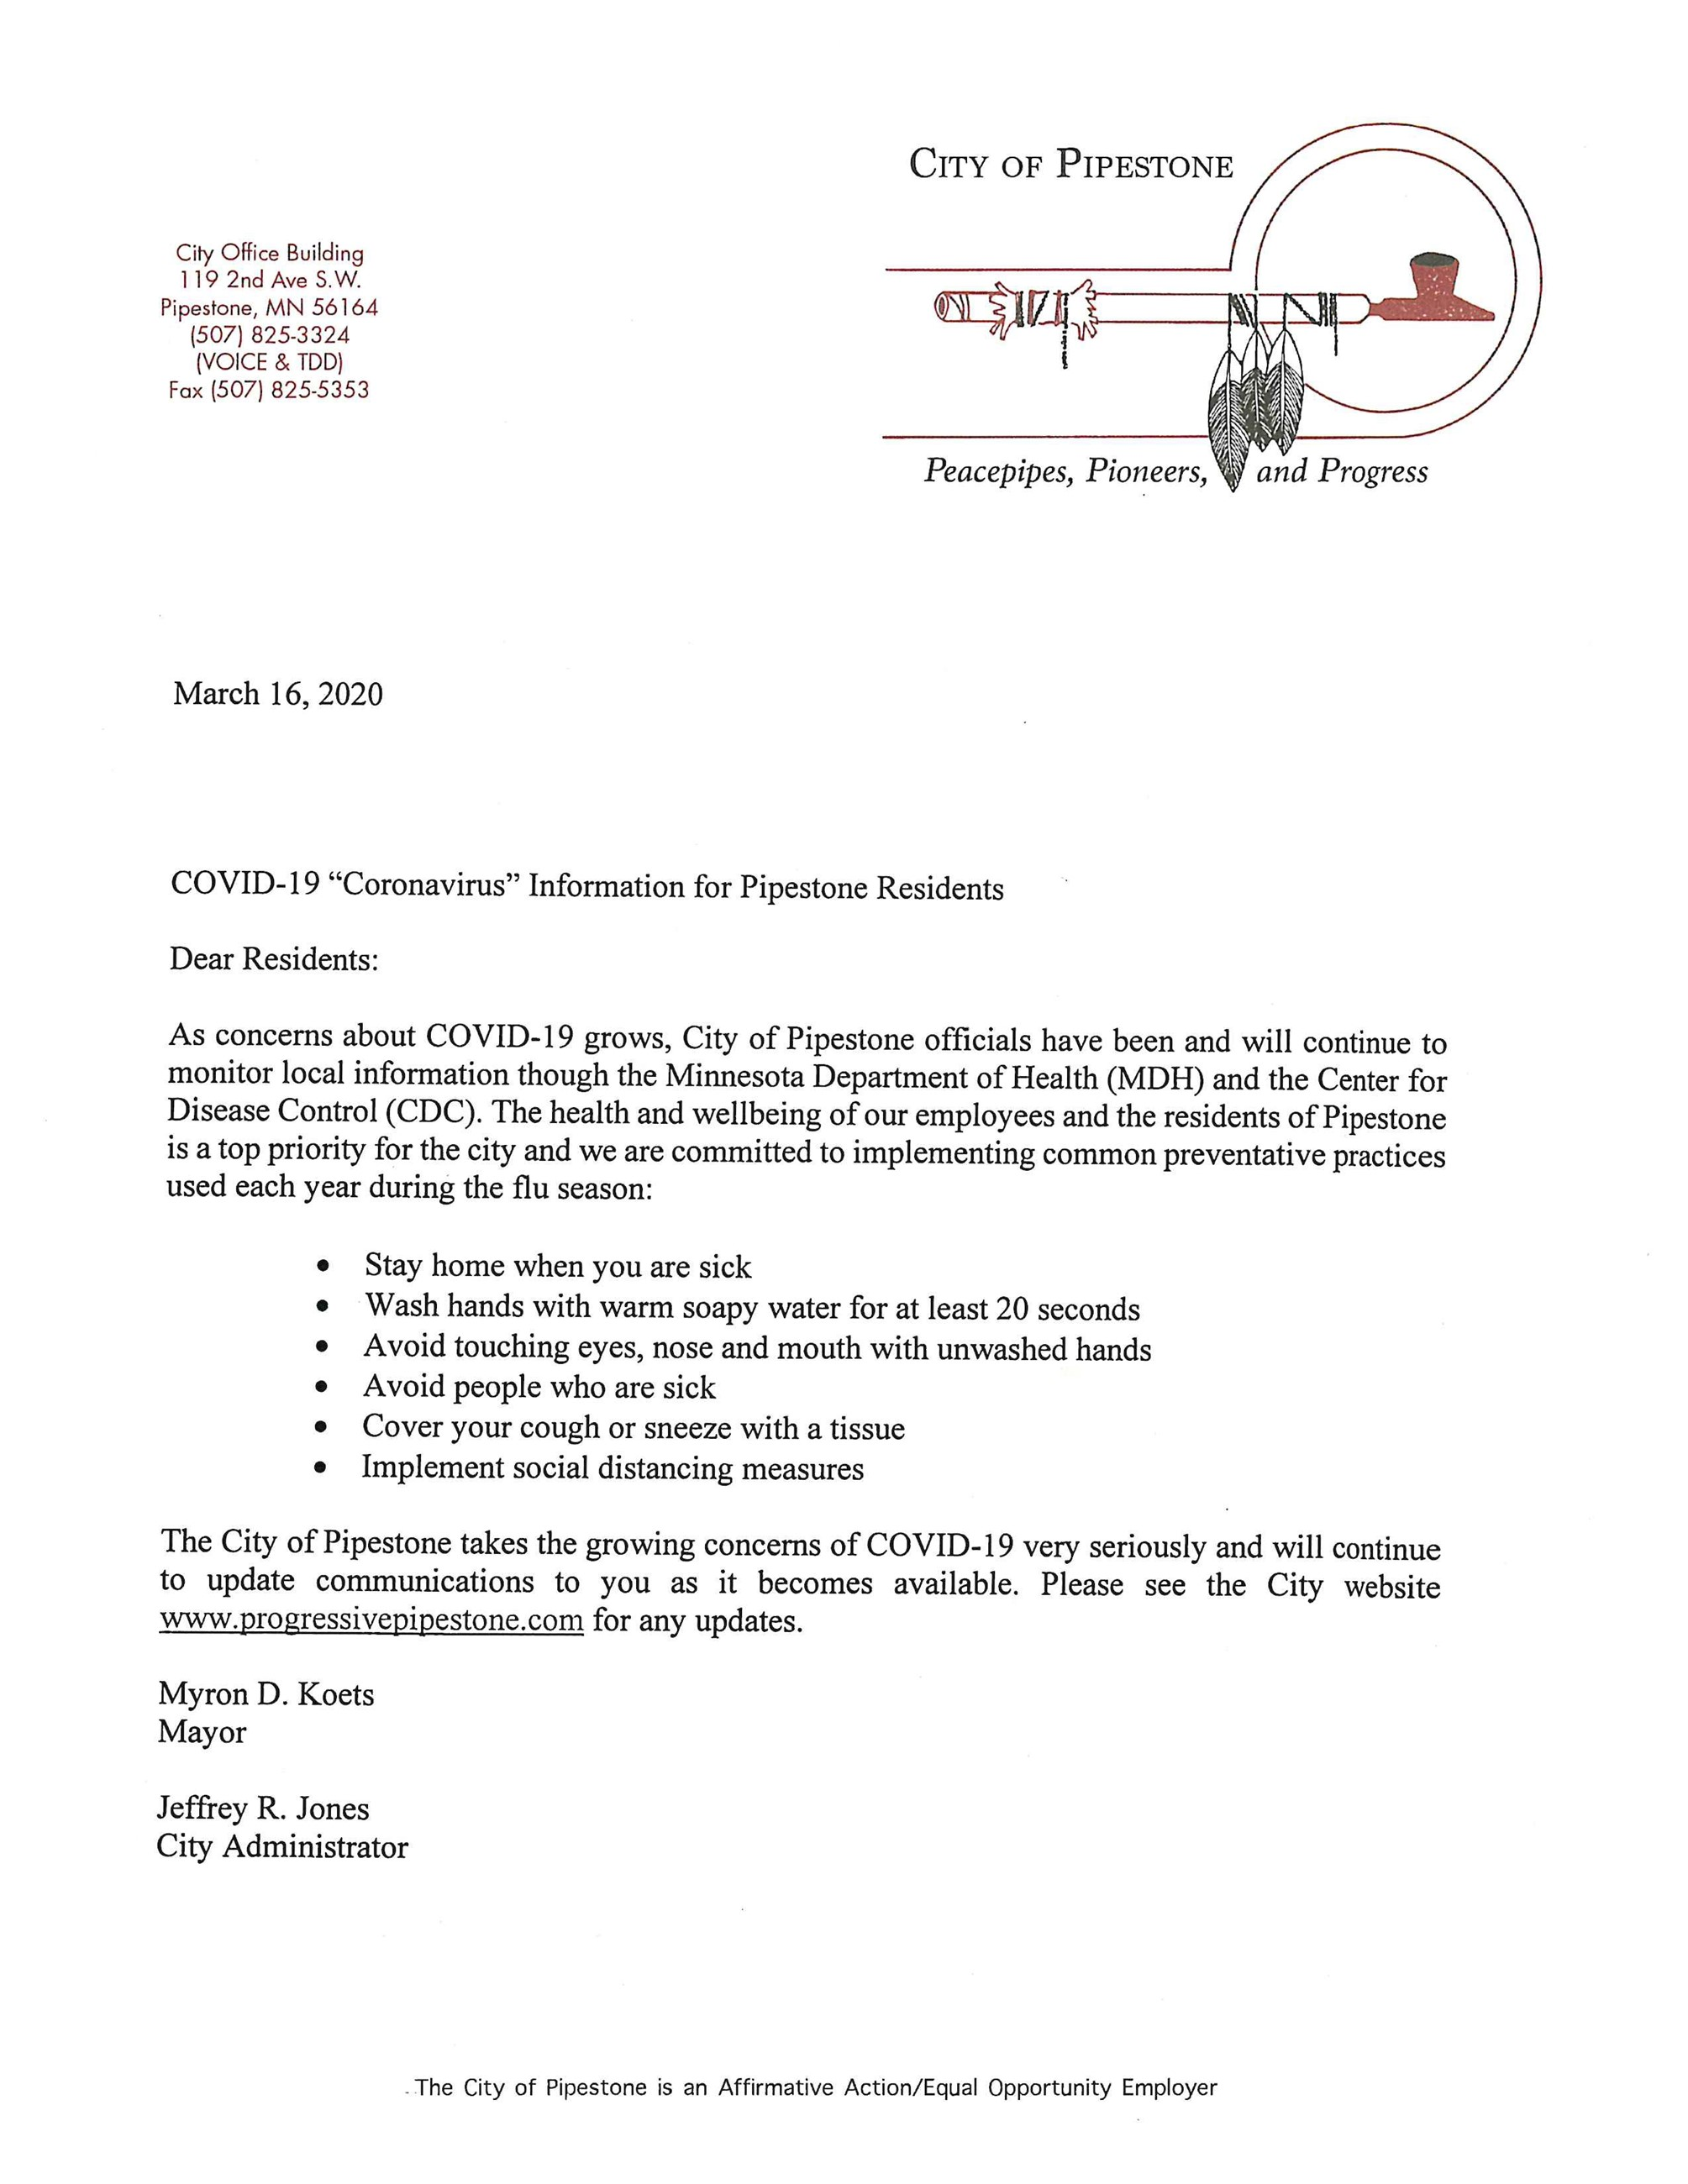 Letter from Pipestone Mayor and City Administrator regarding COVID-19